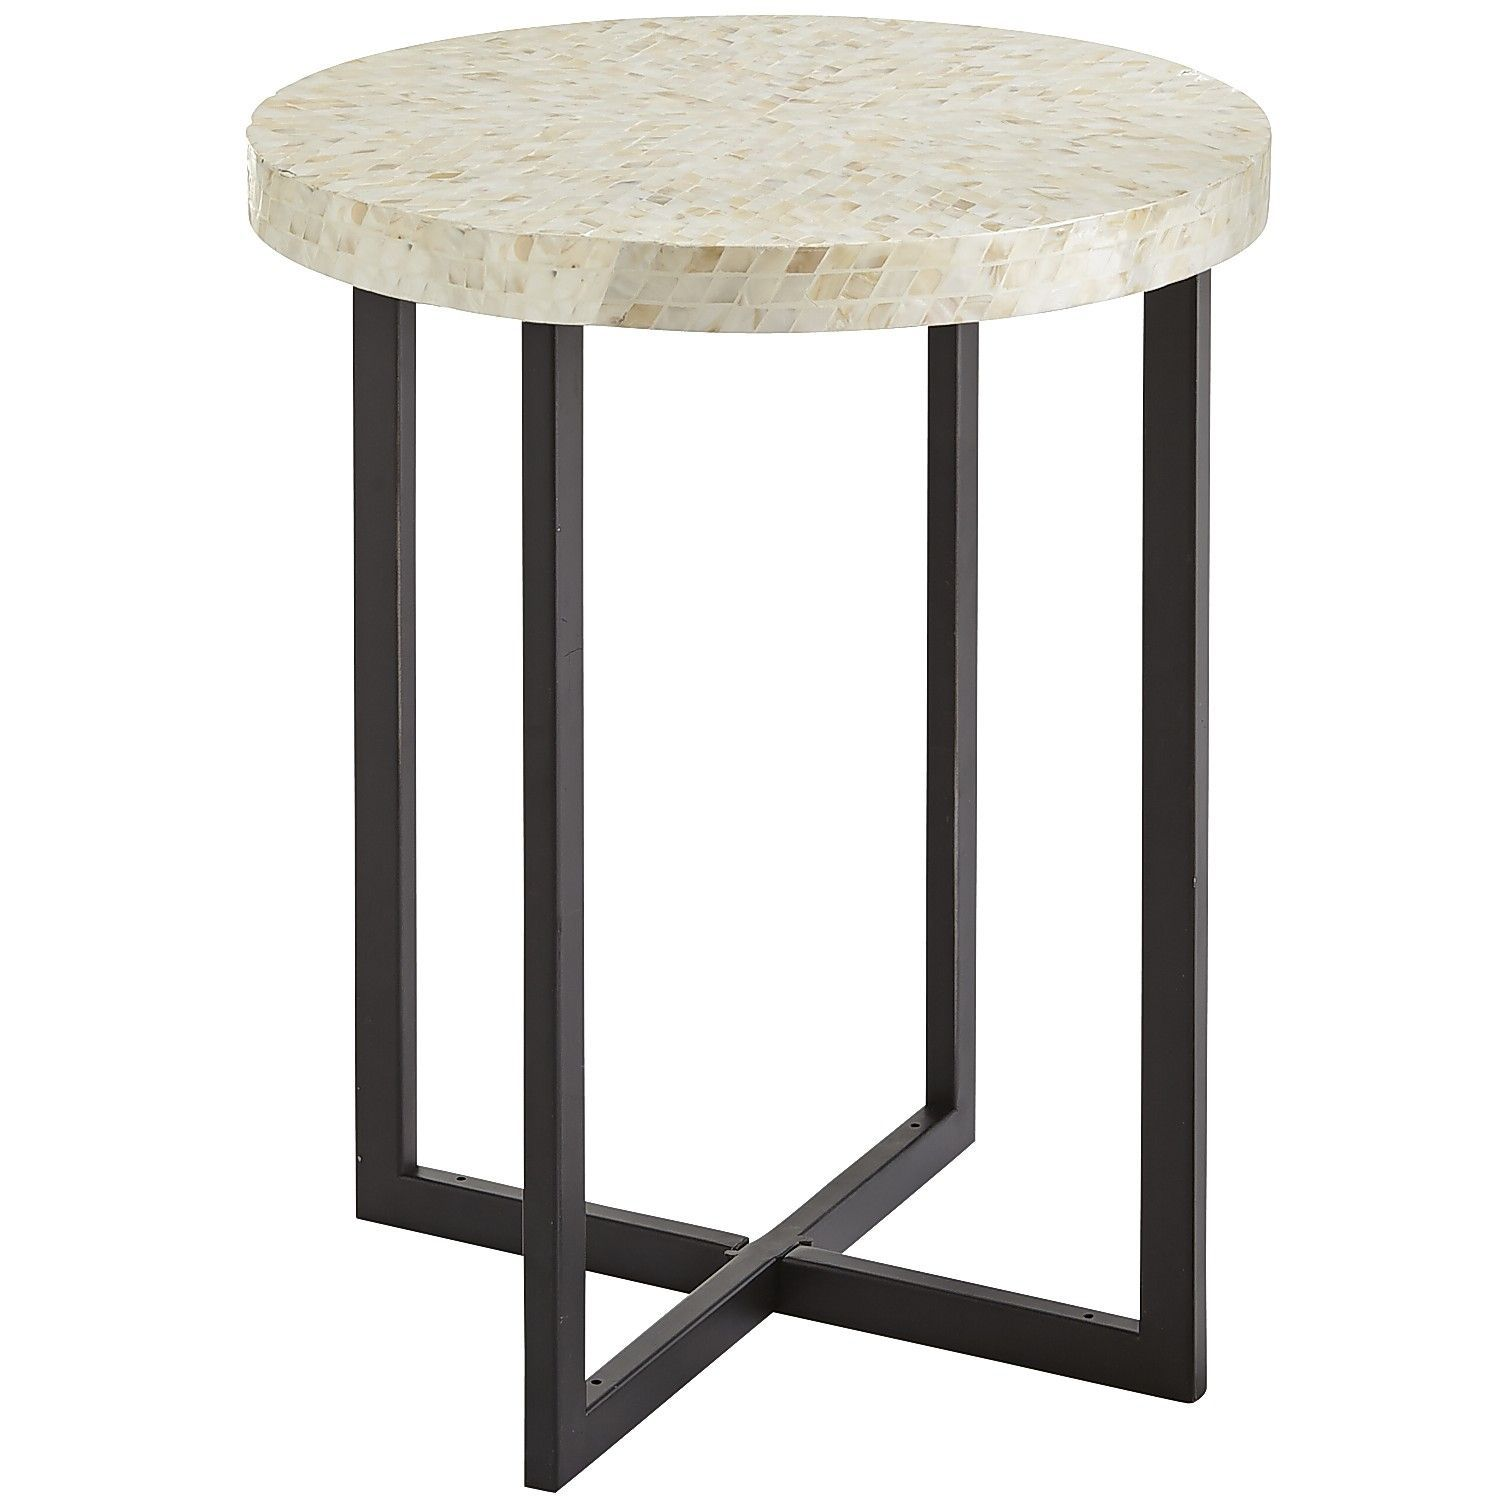 mother pearl end table night stand living rooms kenzie accent brown round kirklands wall decor concrete coffee and tables foyer ideas half moon console mirrors square nesting